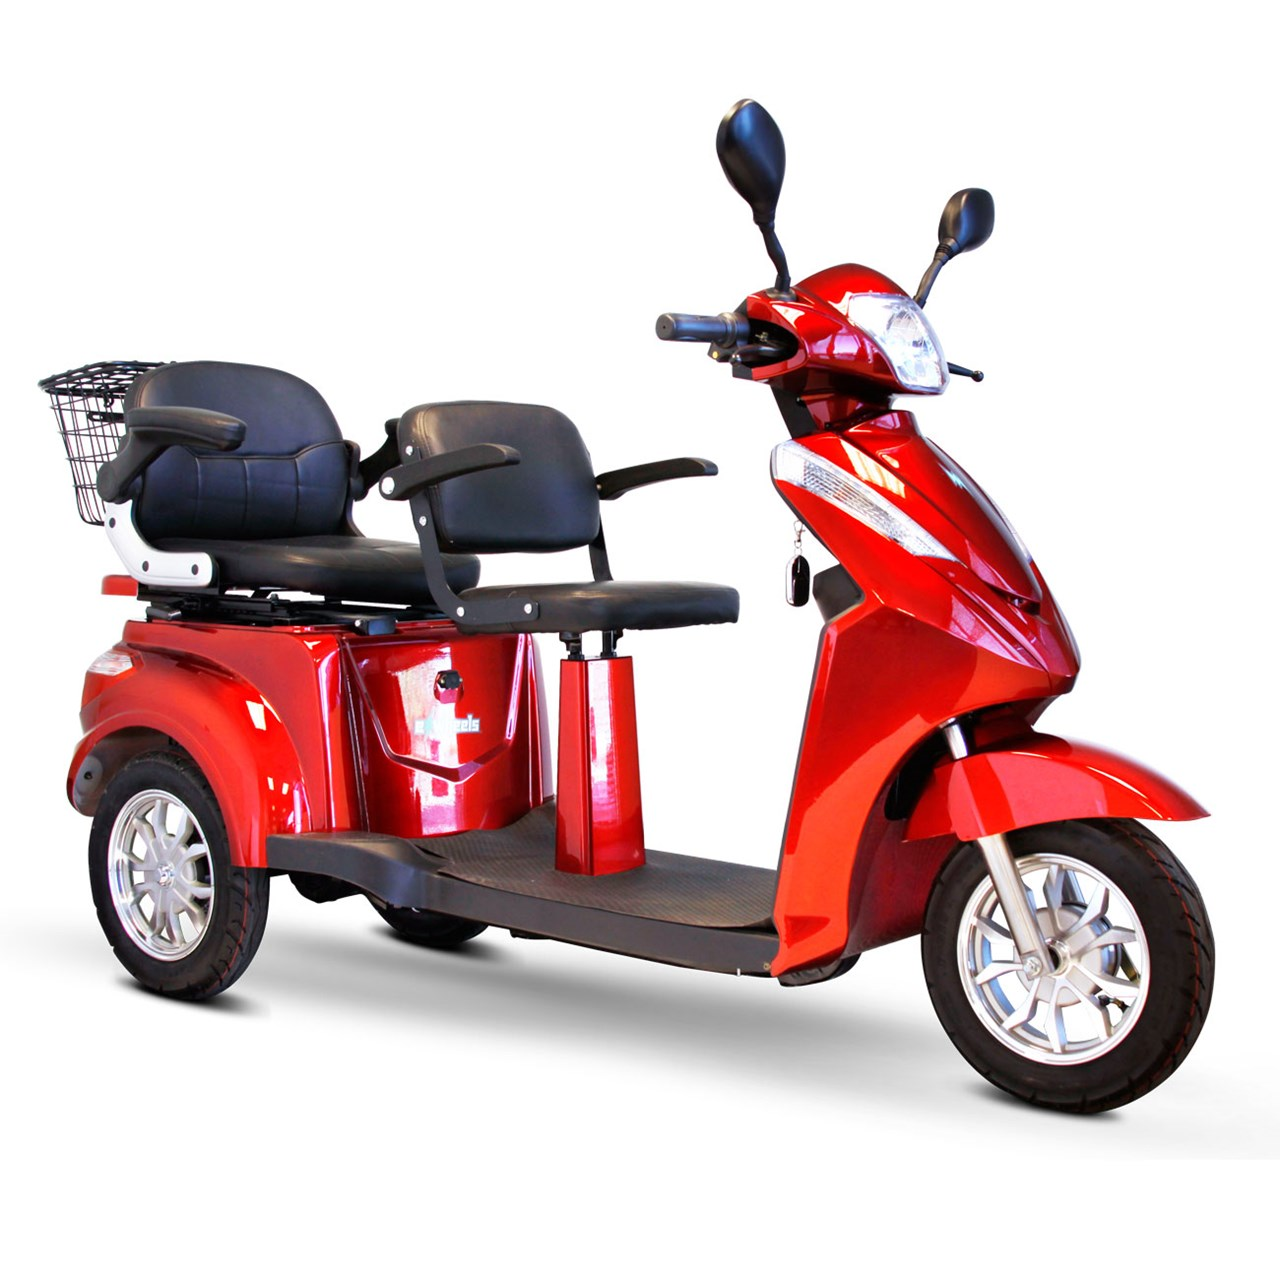 maxiaids ewheels ew 66 2 passenger heavy duty scooter. Black Bedroom Furniture Sets. Home Design Ideas